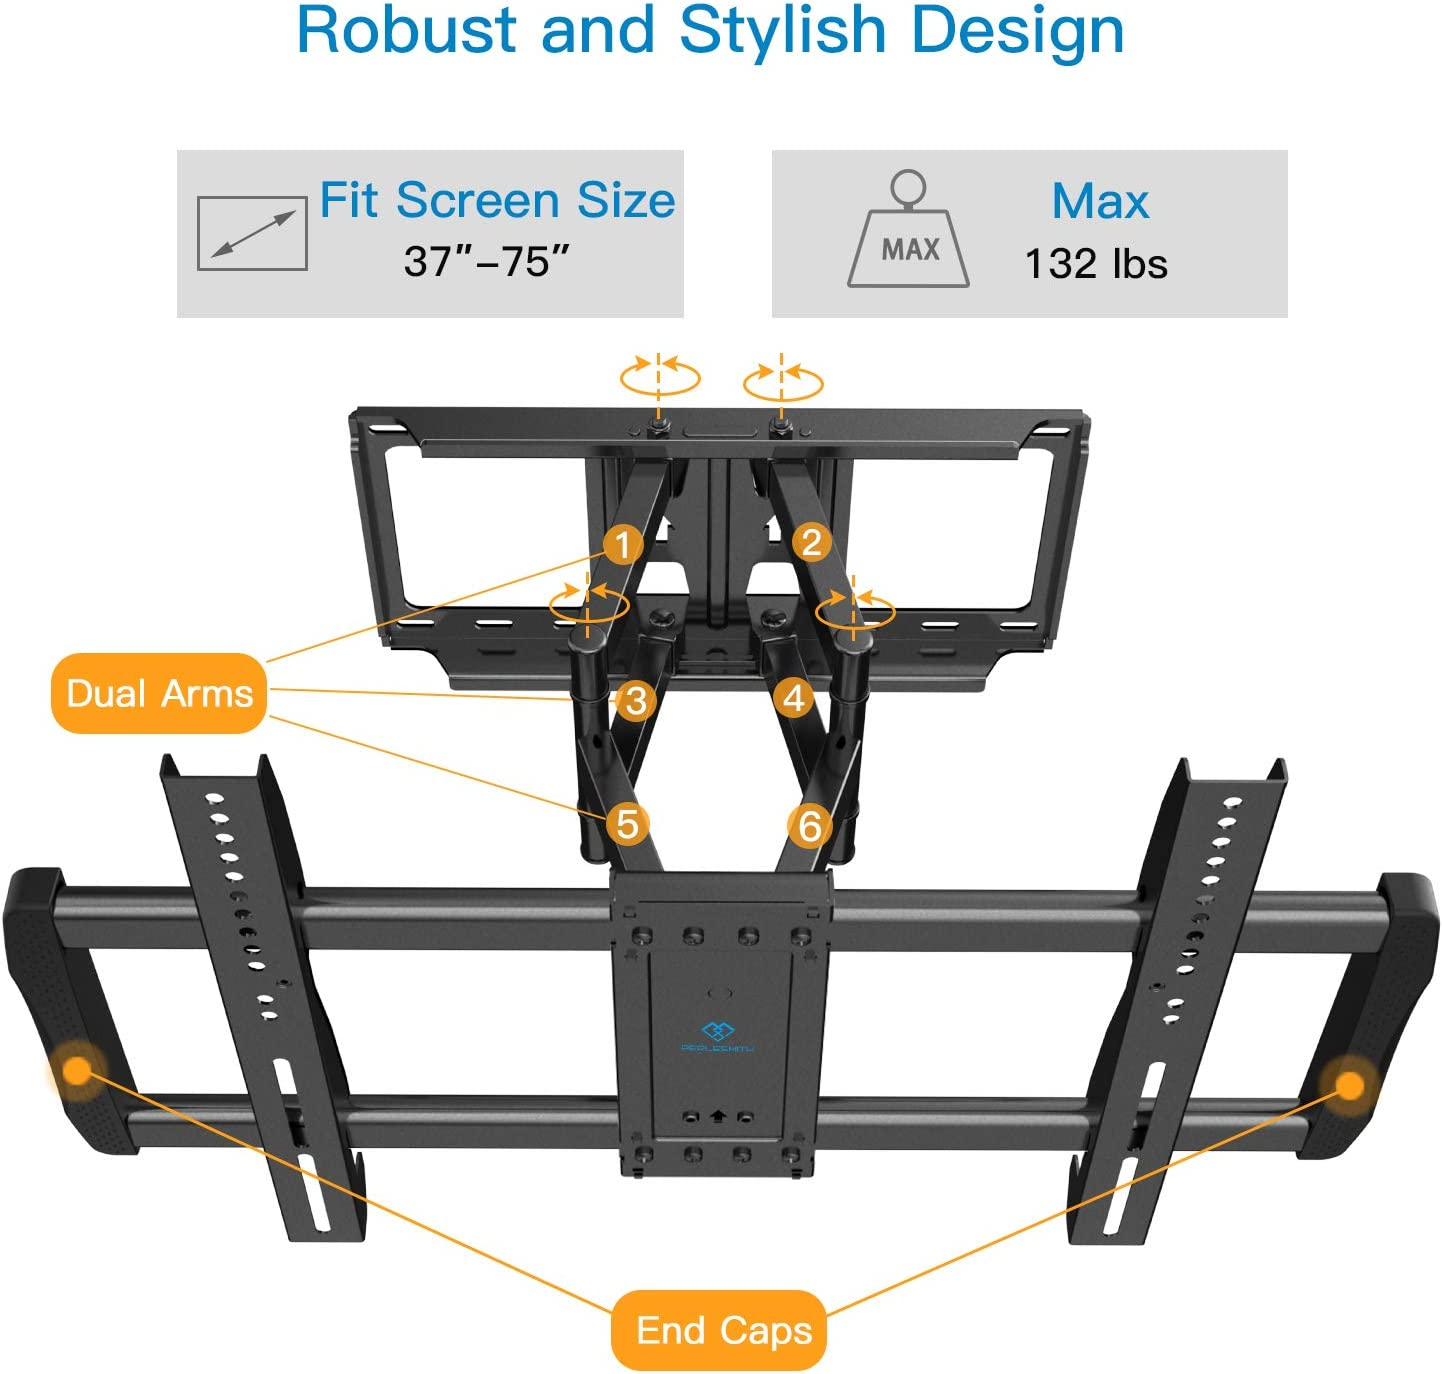 PERLESMITH Full Motion TV Wall Mount - Dual Arms Articulating TV Mount for 37-70 Inch LED, LCD, OLED TVs up to 132lbs VESA 600x400, Features Smooth Articulation, Swivel, Tilt - PSLFK3